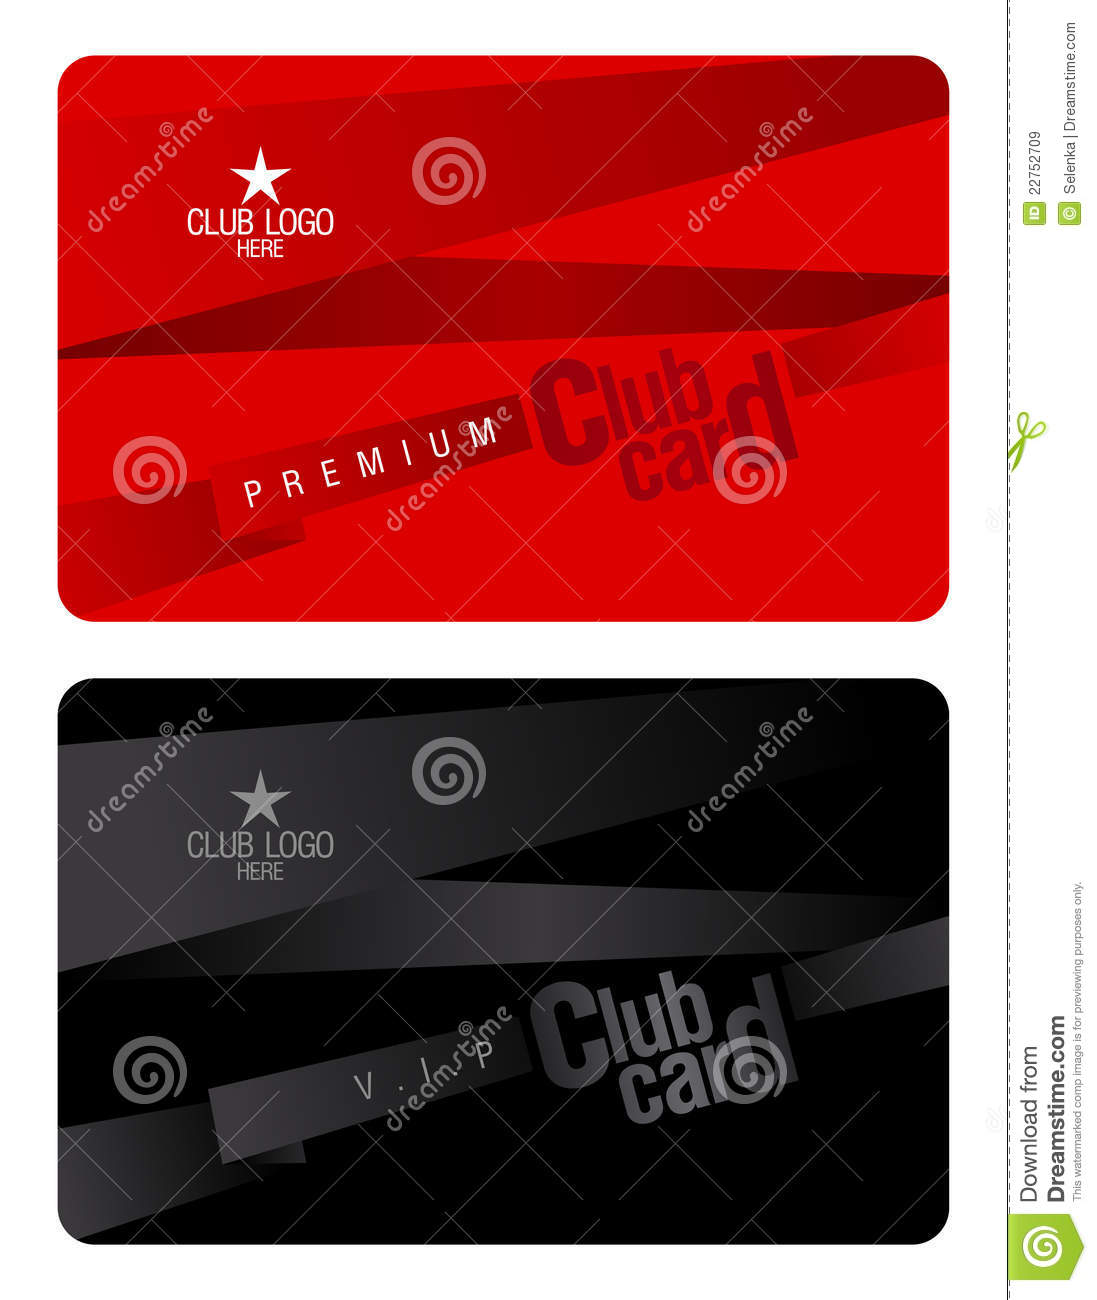 Club Card Design Template Royalty Free Stock Images Image 22752709